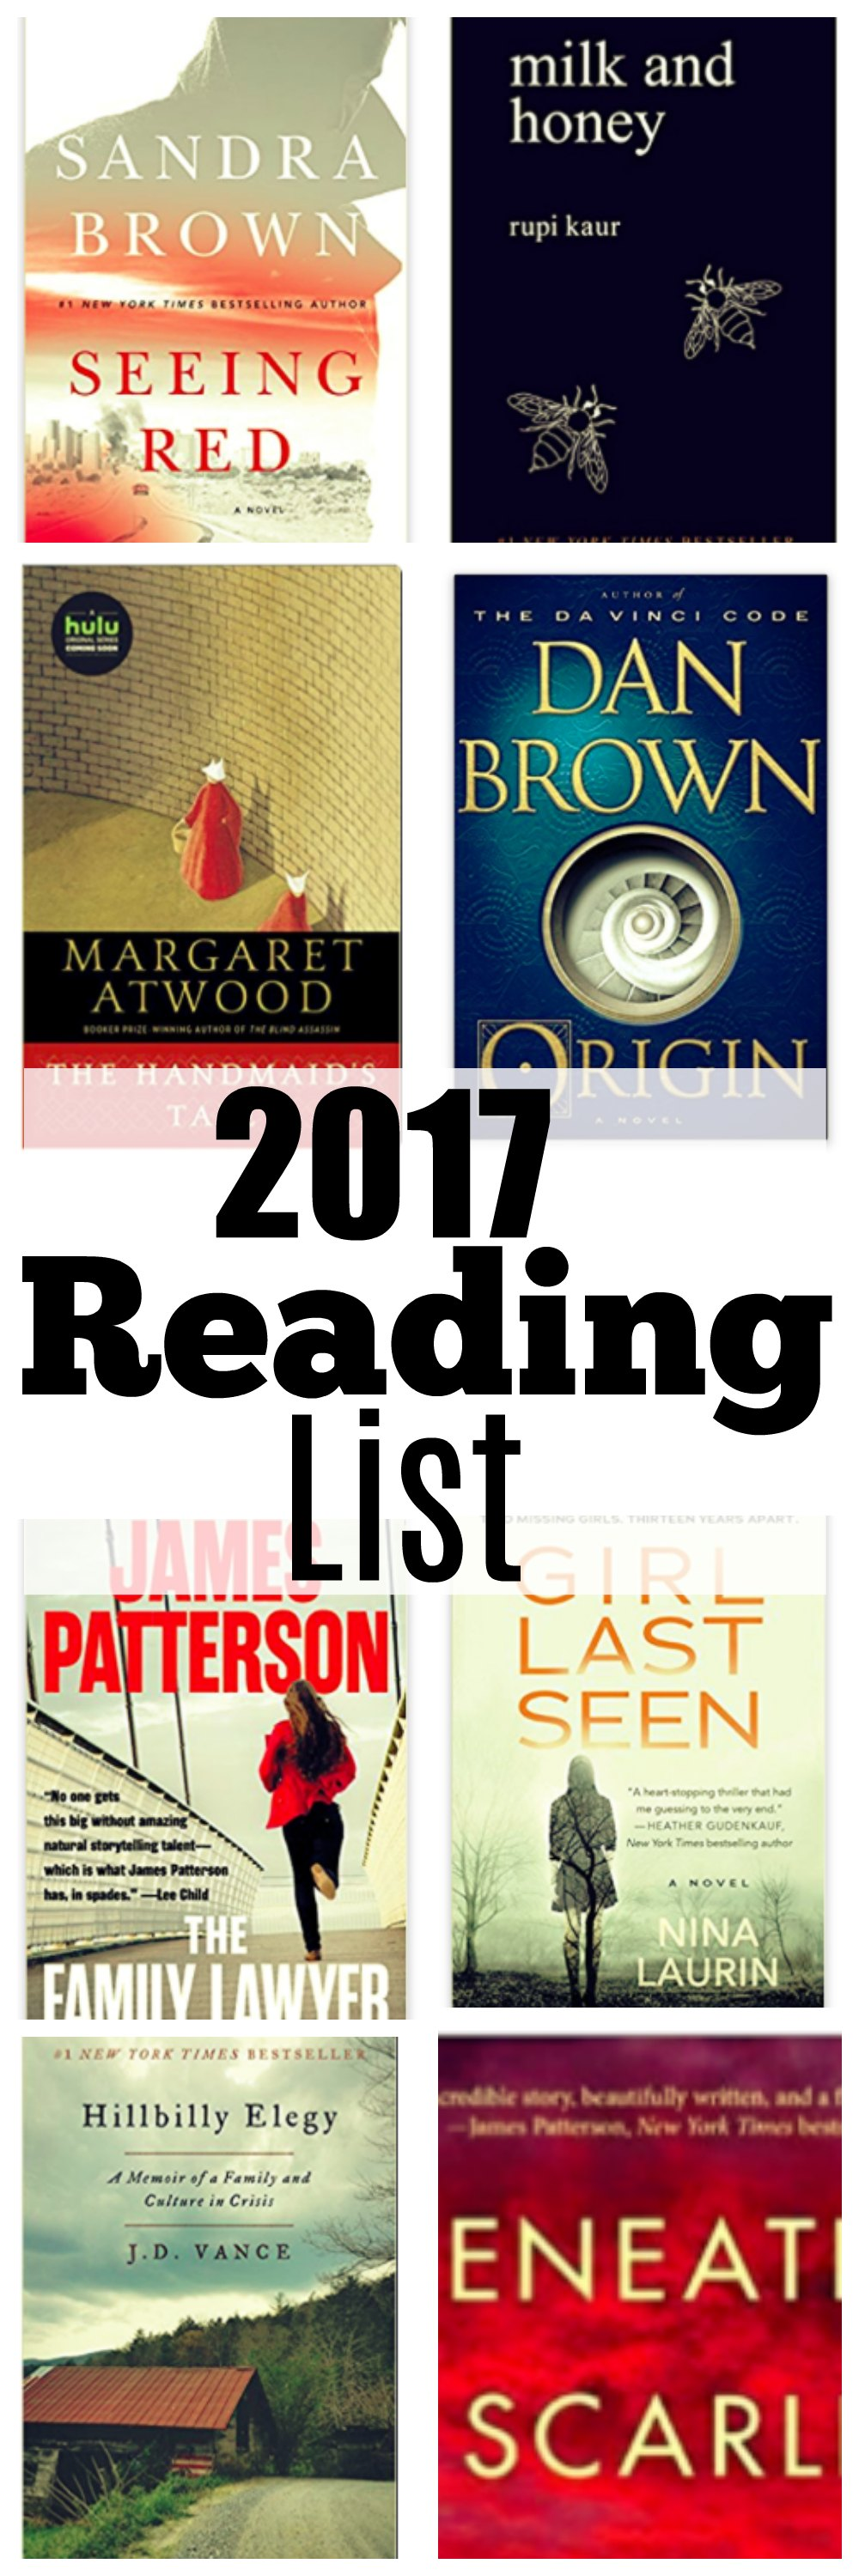 2017 Reading List - Fiction by Atlanta mom blogger Happily Hughes